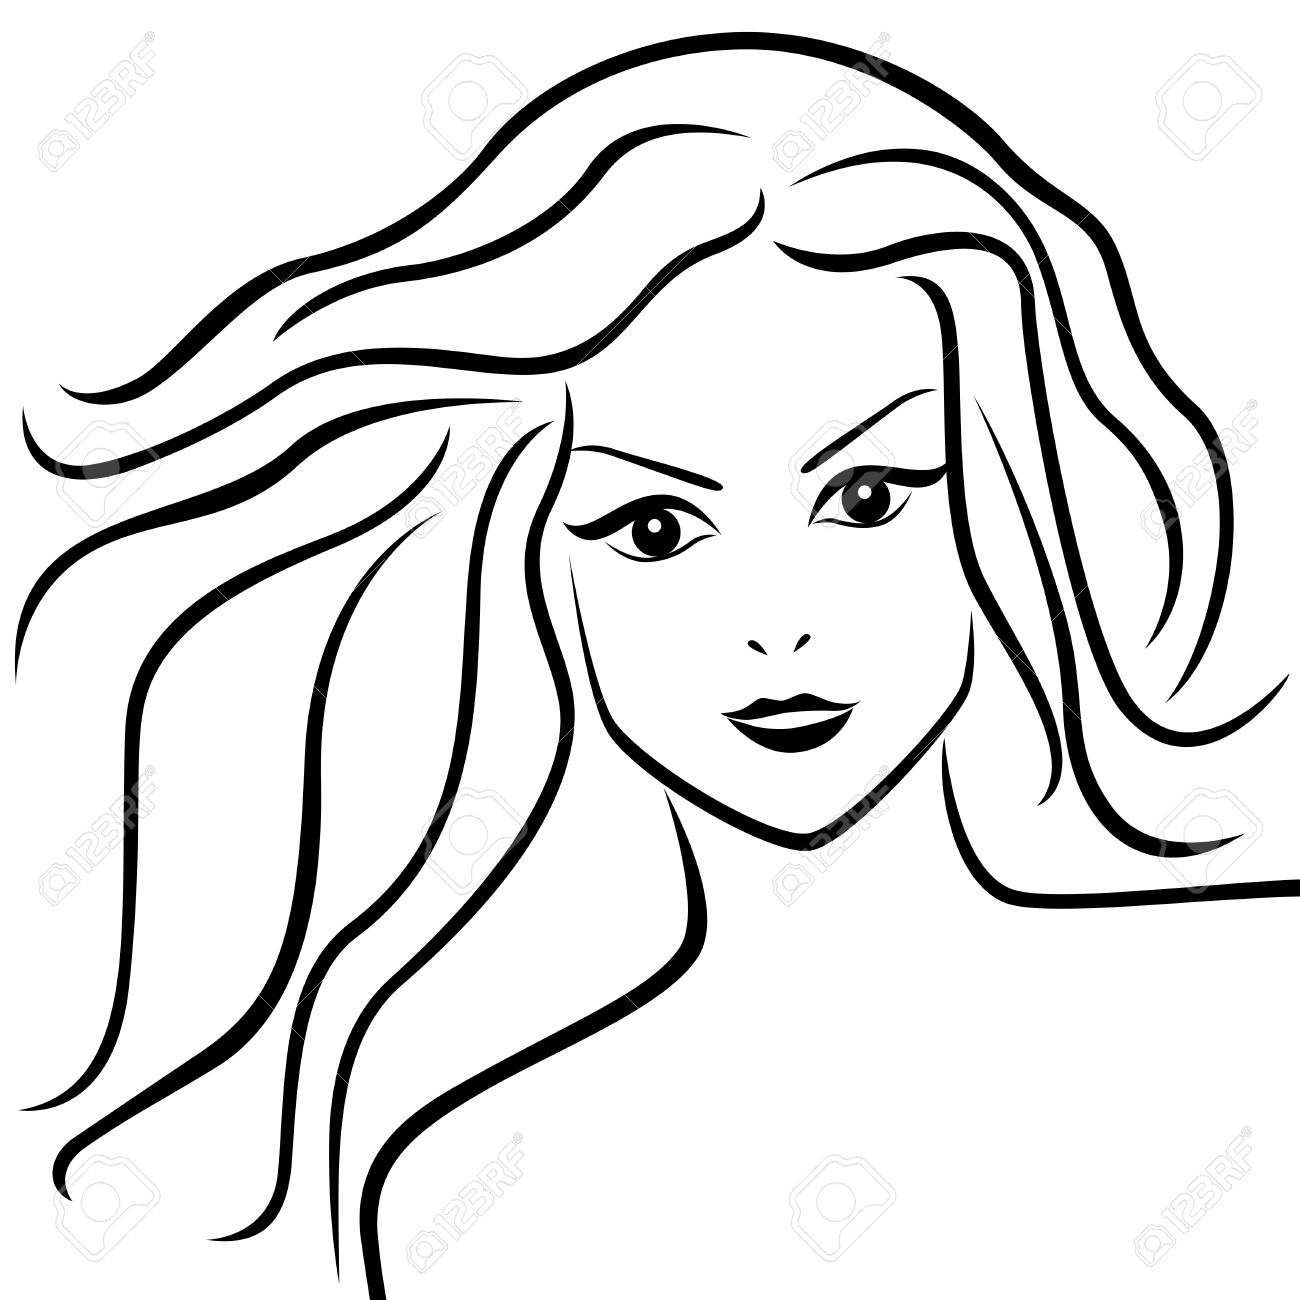 1300x1300 Abstract Portrait Of Young Woman With Flowing Hair, Hand Drawing